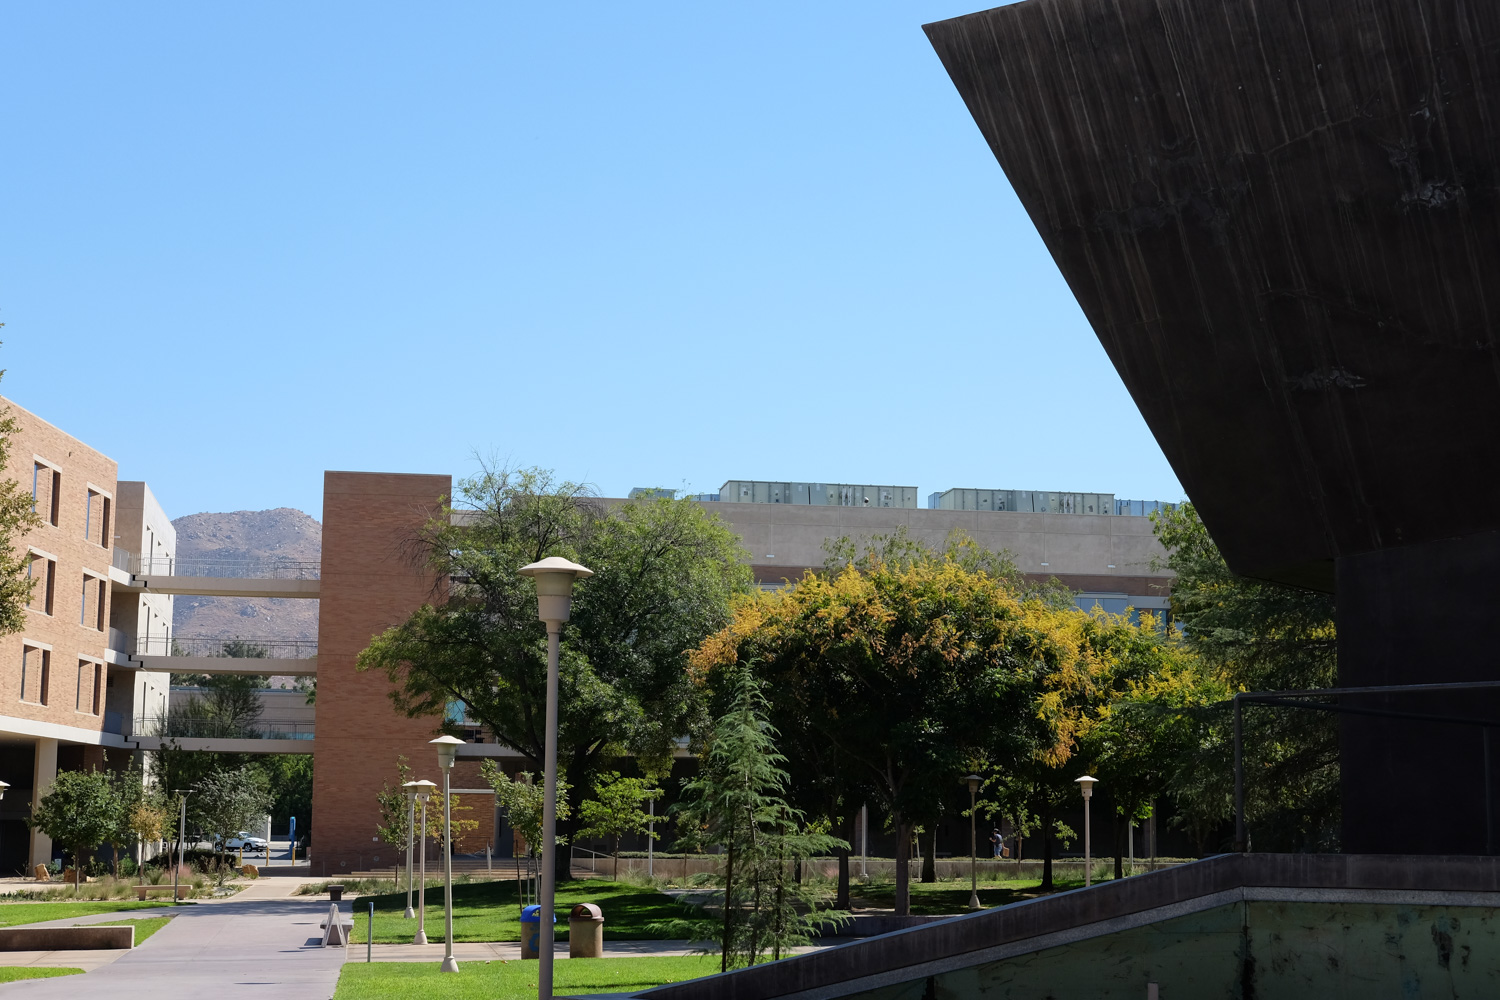 View from Arts Building